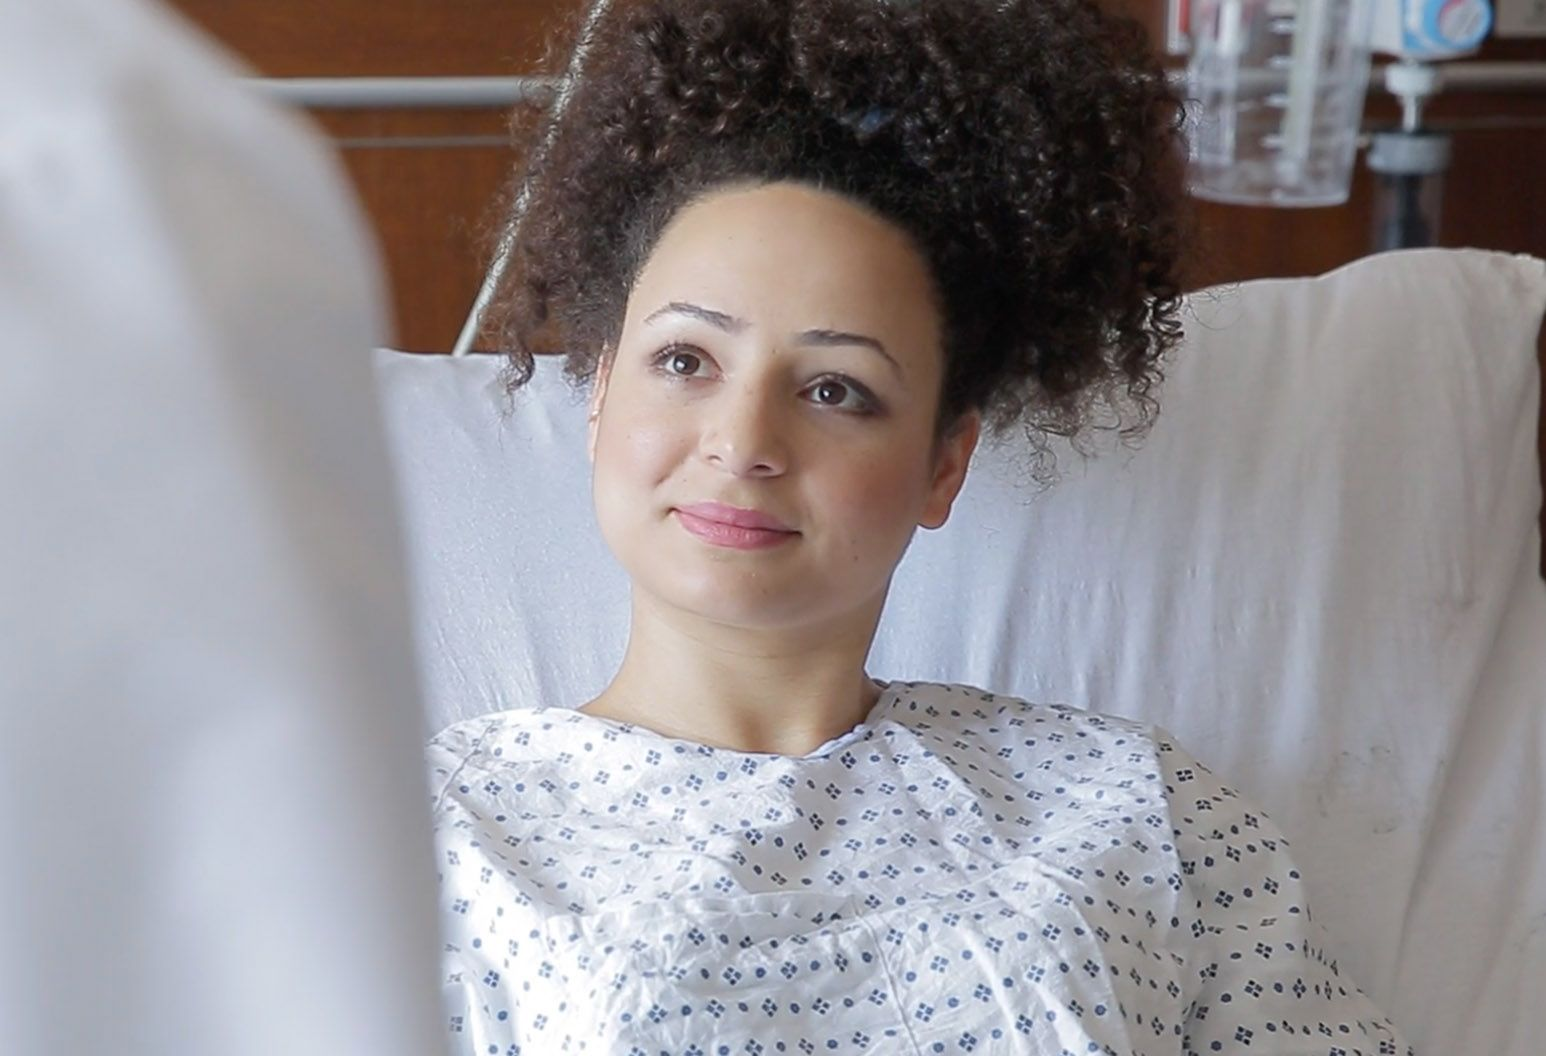 A female patient with dark curly hair wears a medical gown and lies in a bed. She looks up at the doctor (out of frame) for reassurance.